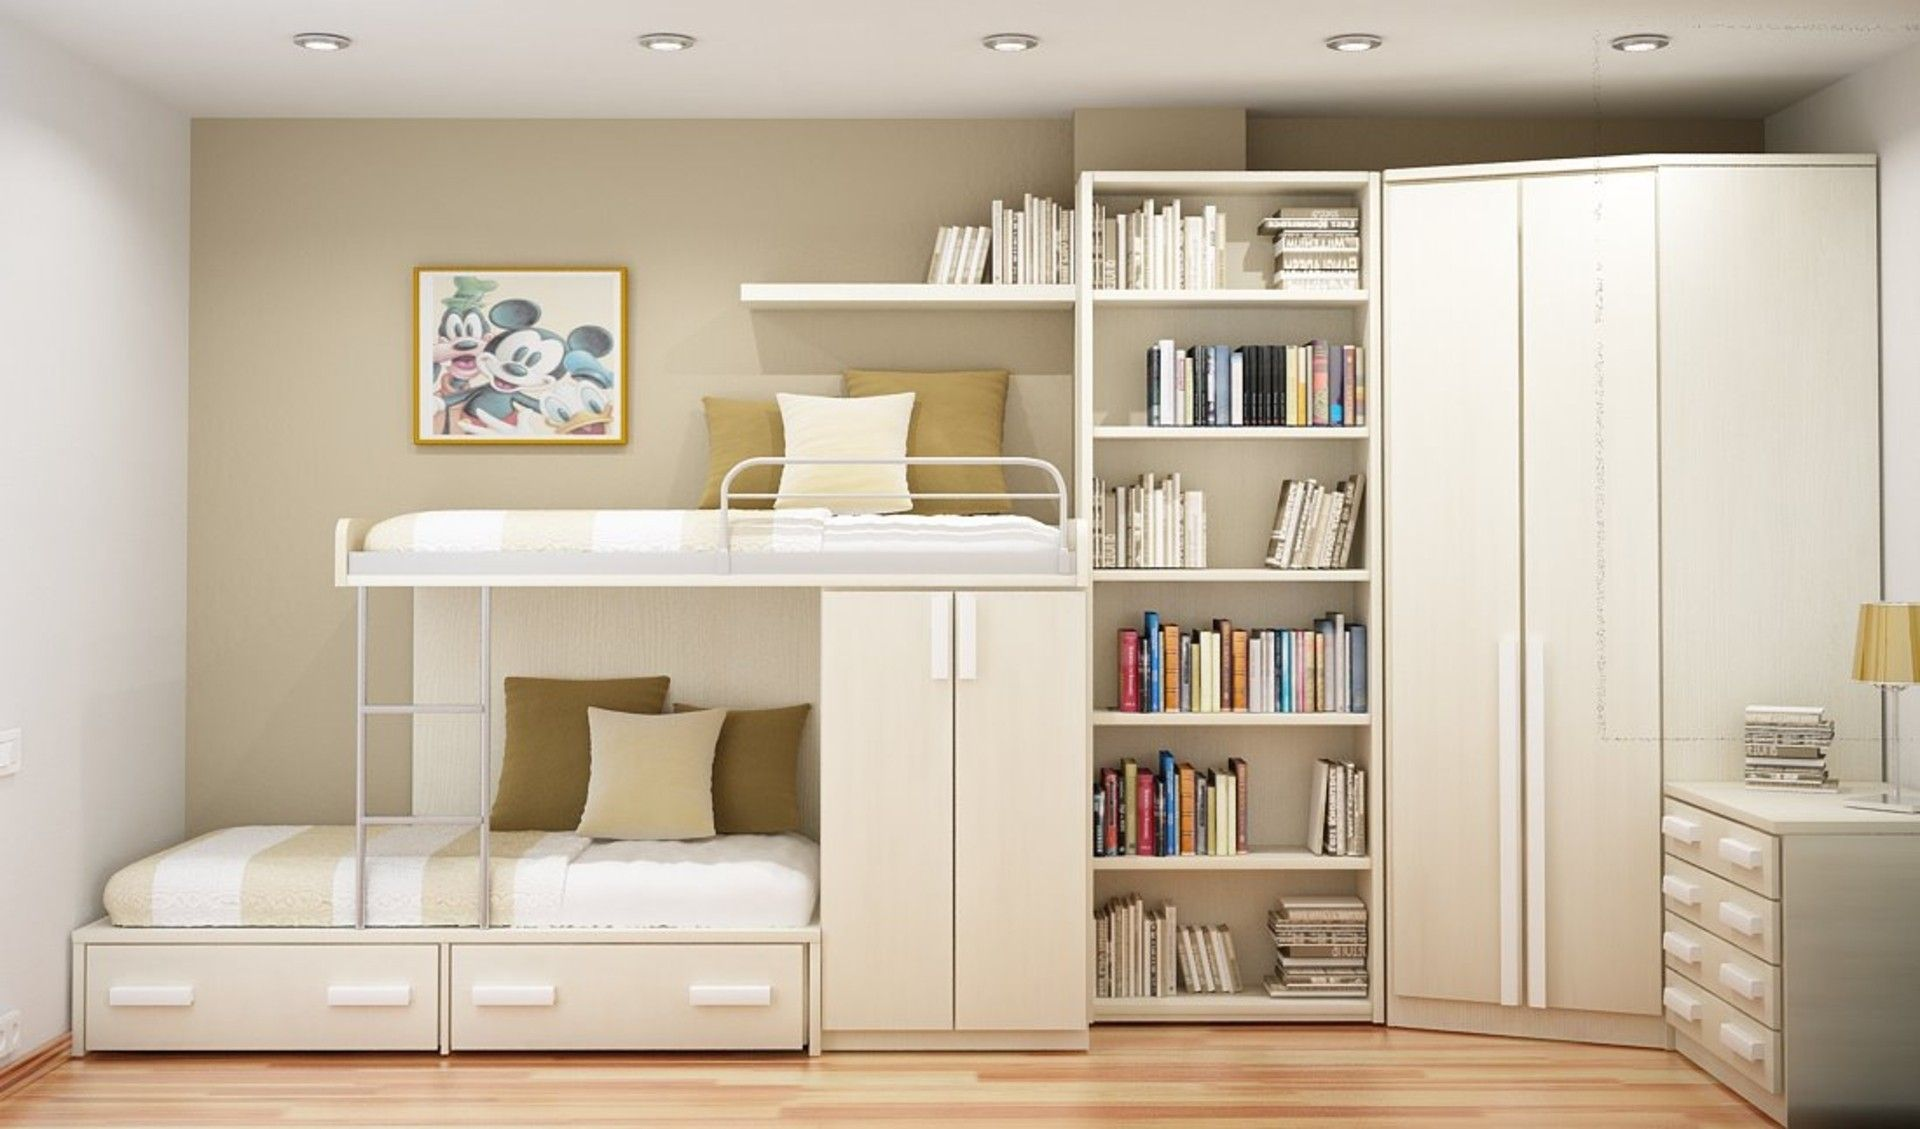 Loft bed underneath ideas  Image result for child bed small ladder  childrenus bed  Pinterest